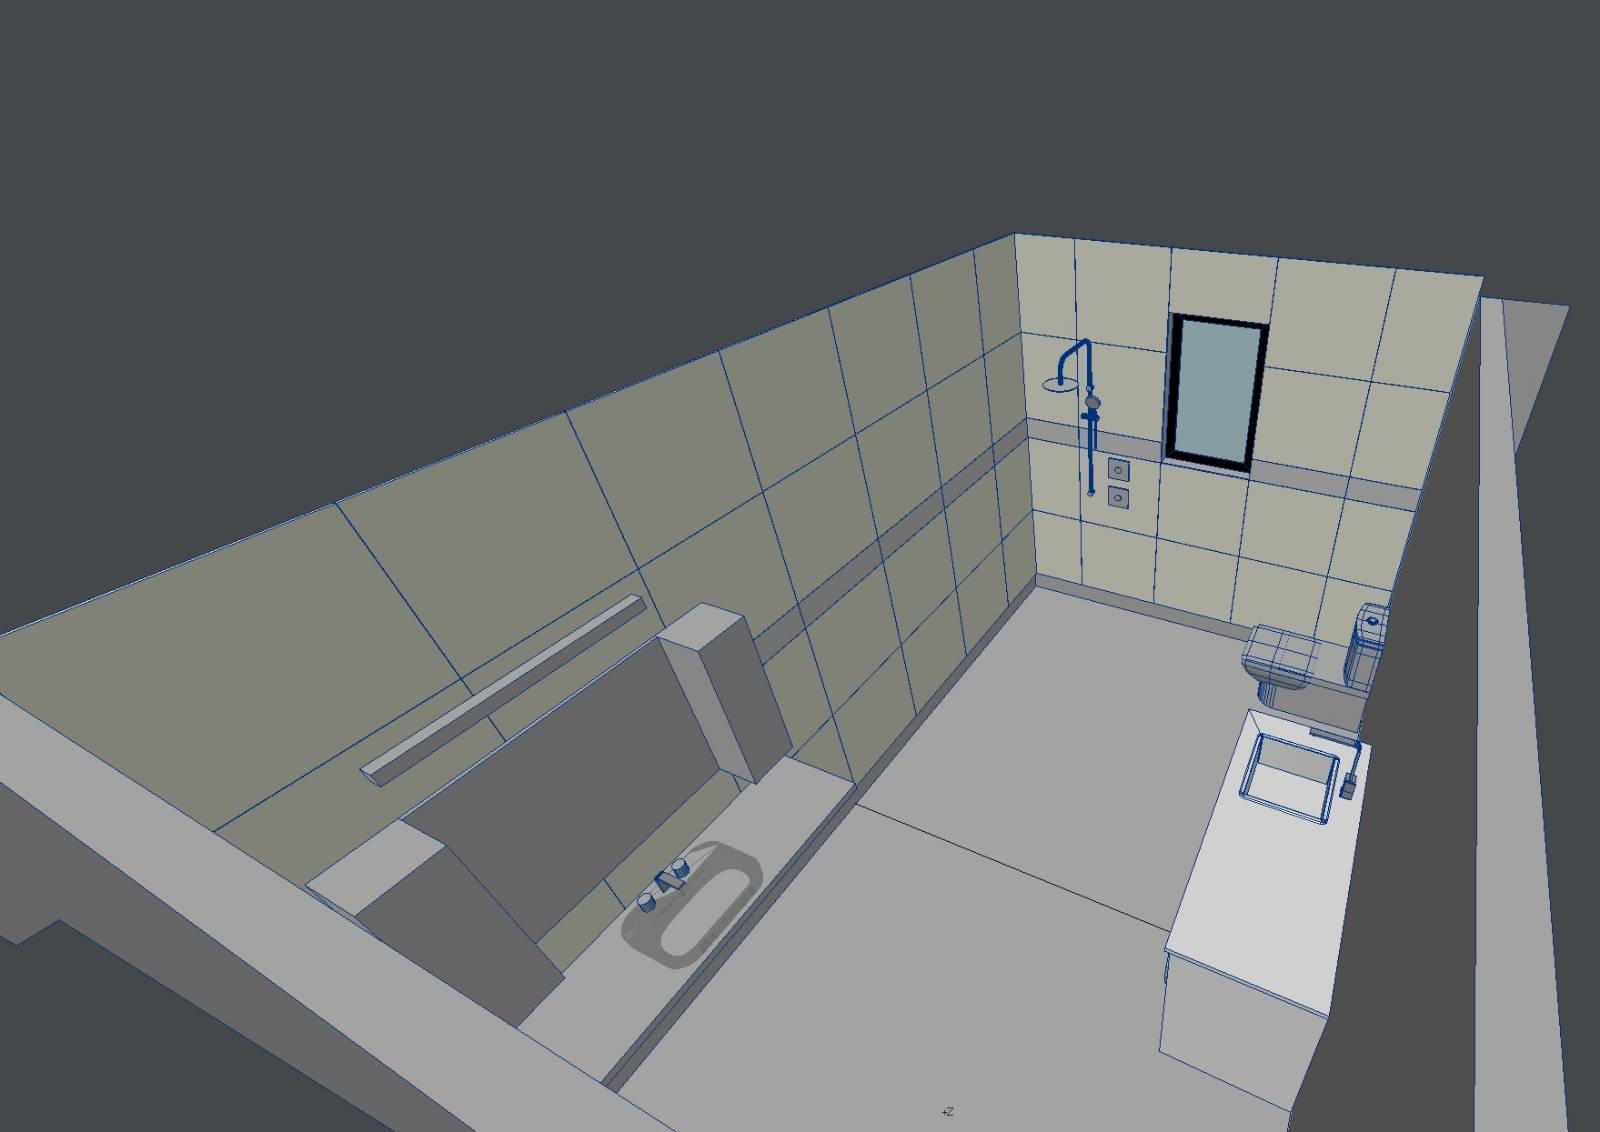 How extensive should waterproofing be for an open shower?